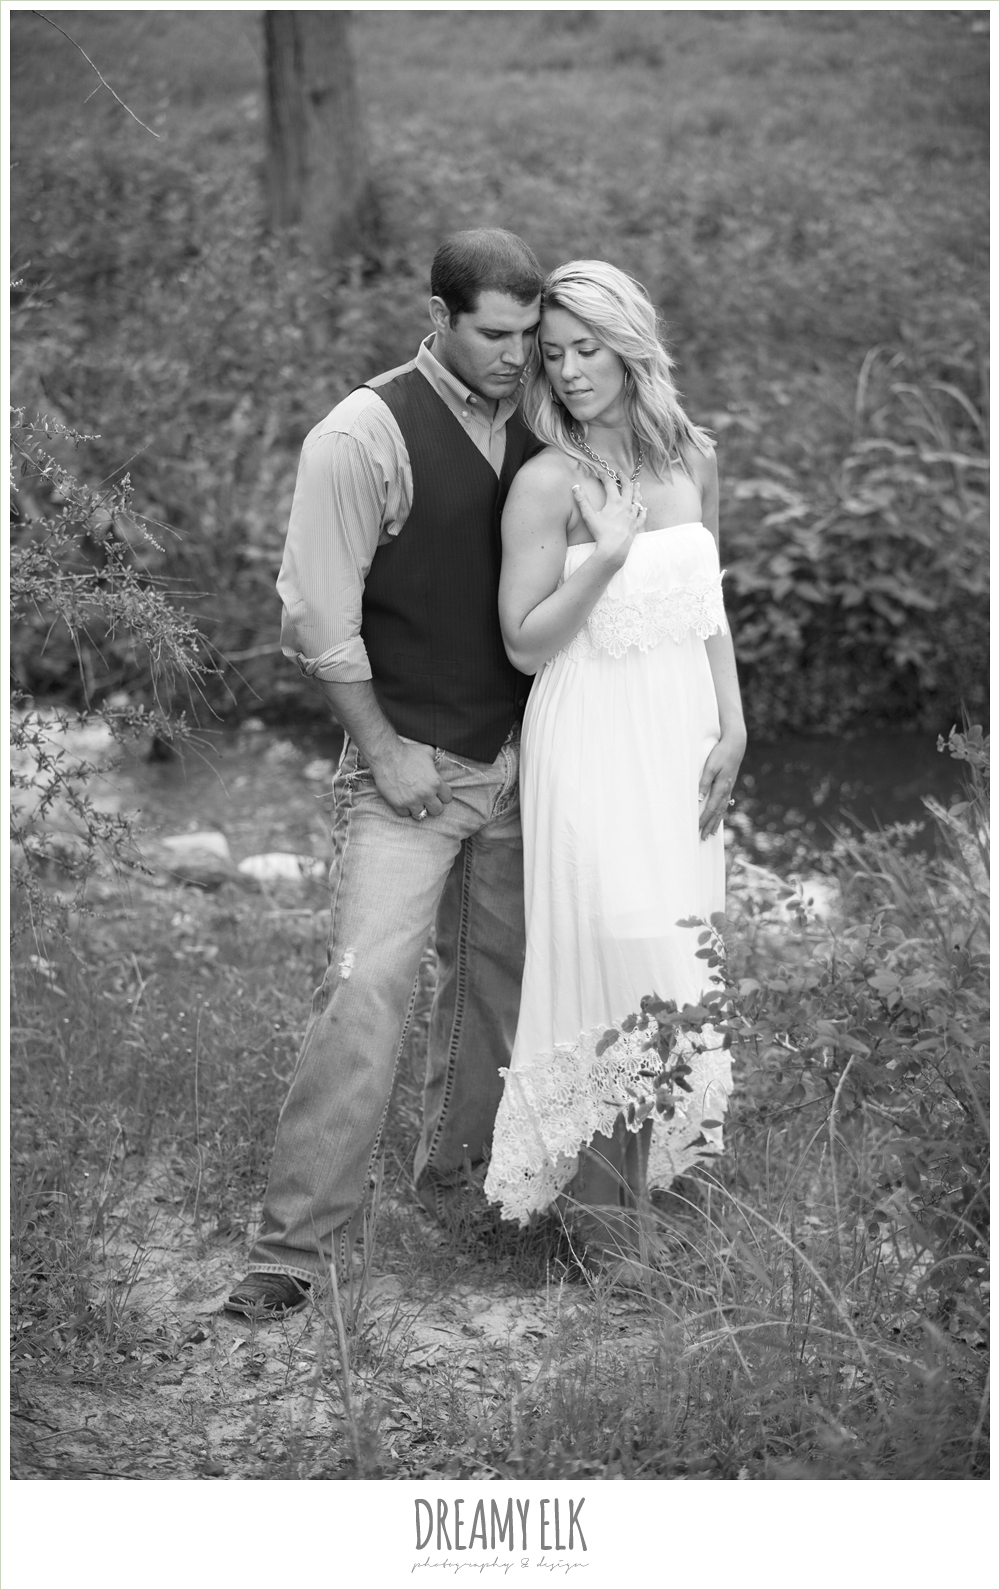 romantic outdoor engagement photo, jeans and vest, white dress